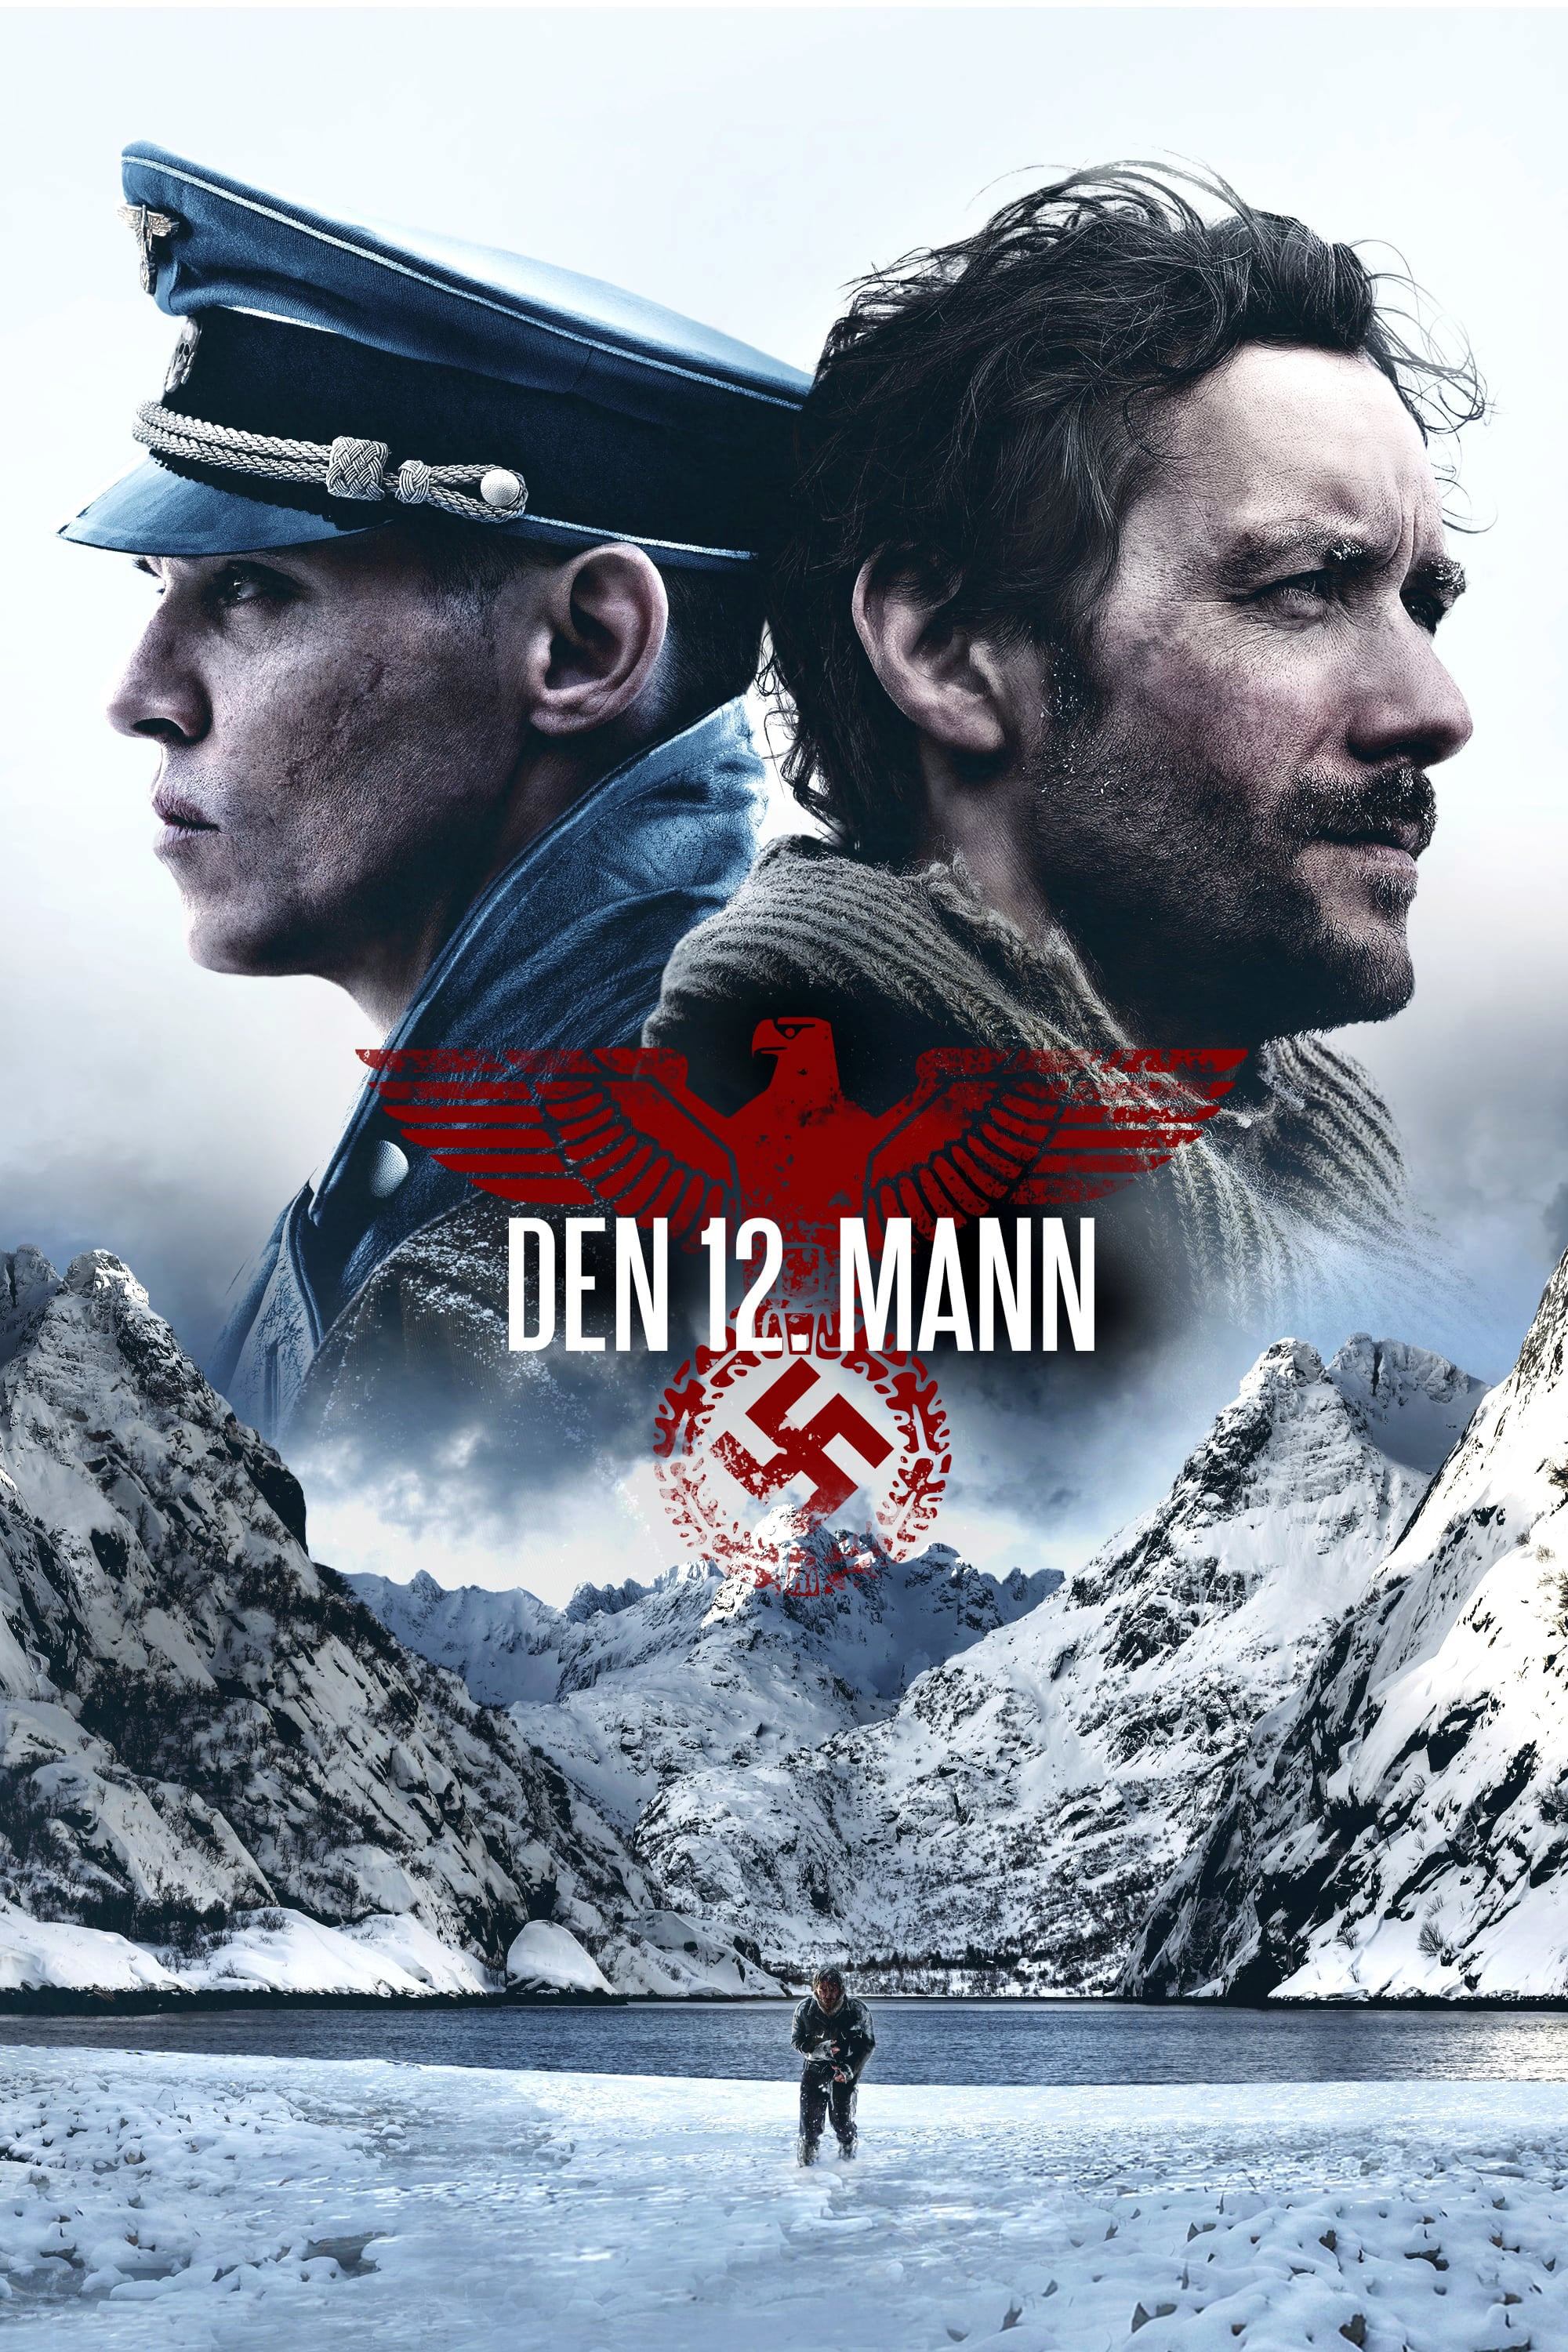 Regarder Den 12. mann en streaming gratuit